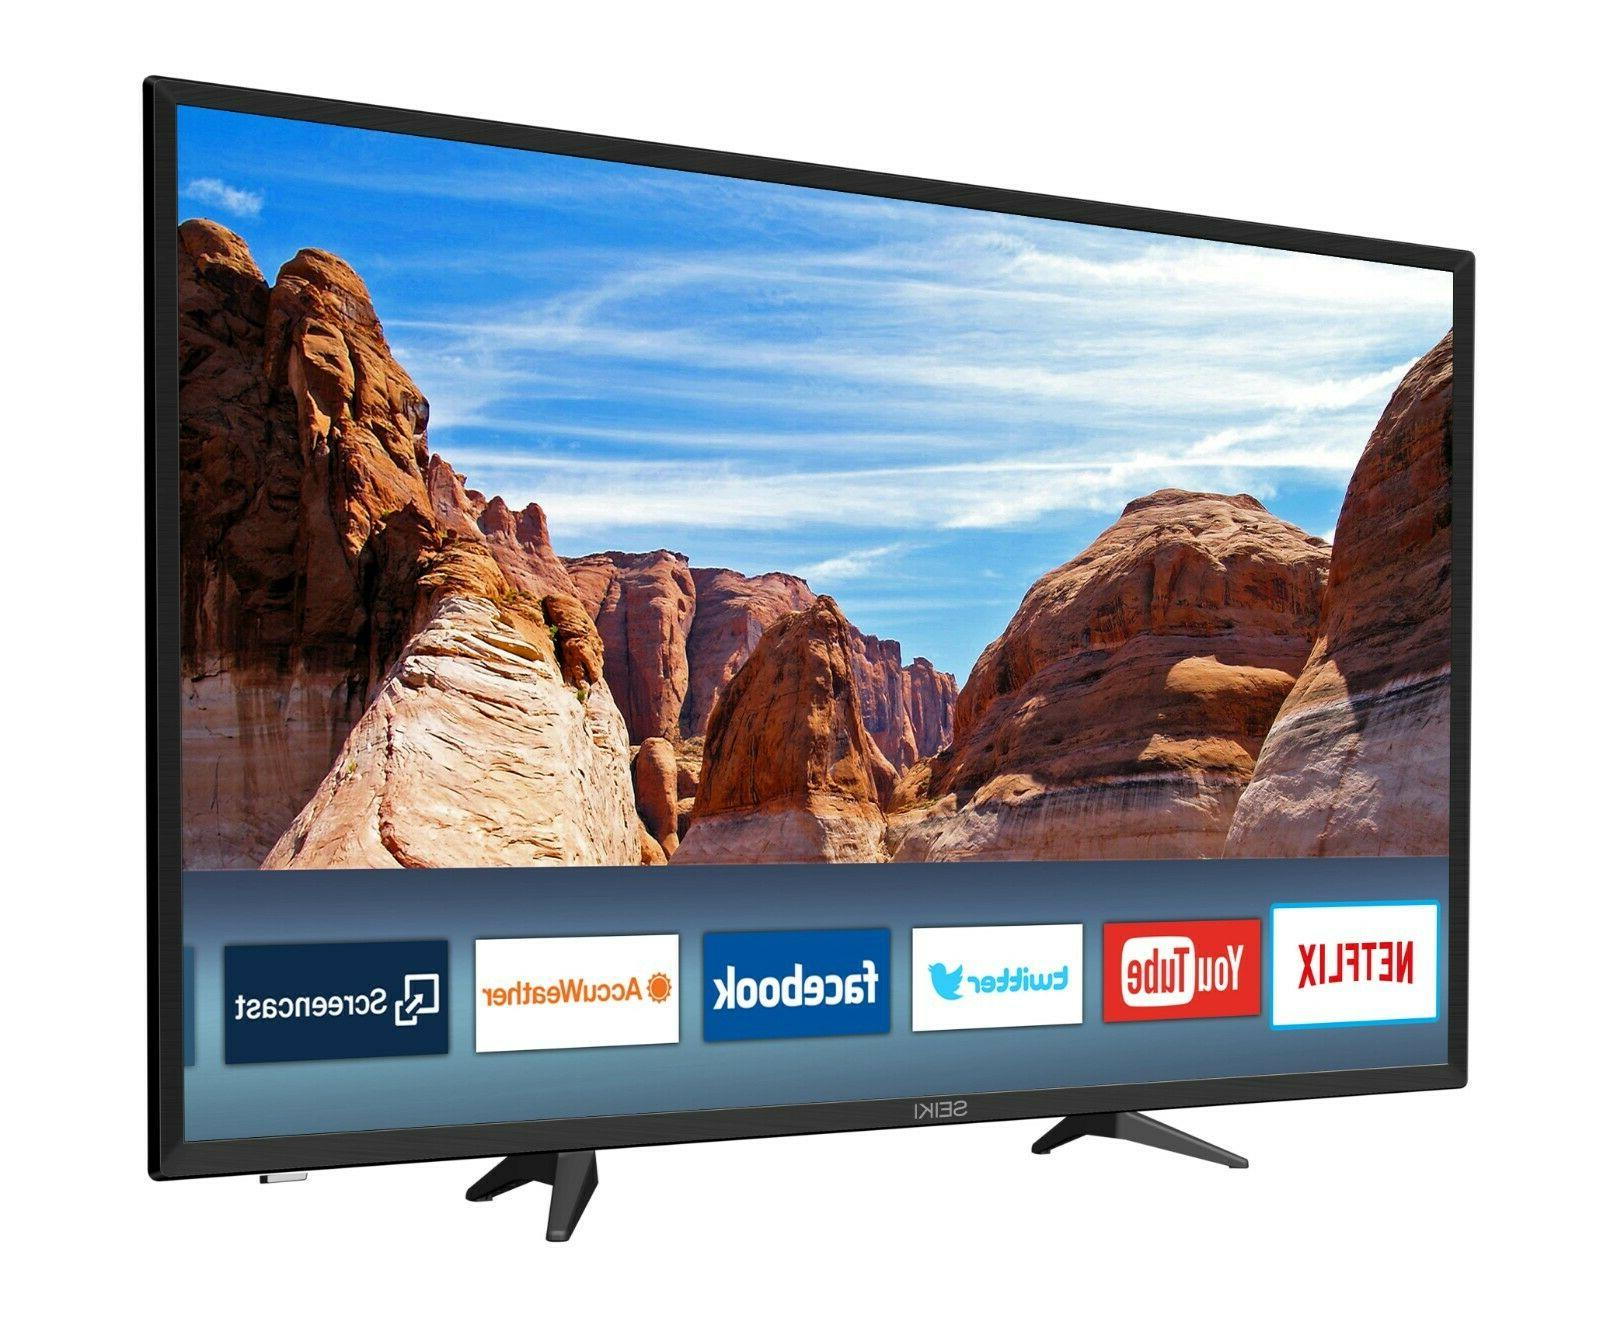 sc40fk700n fhd smart ott tv